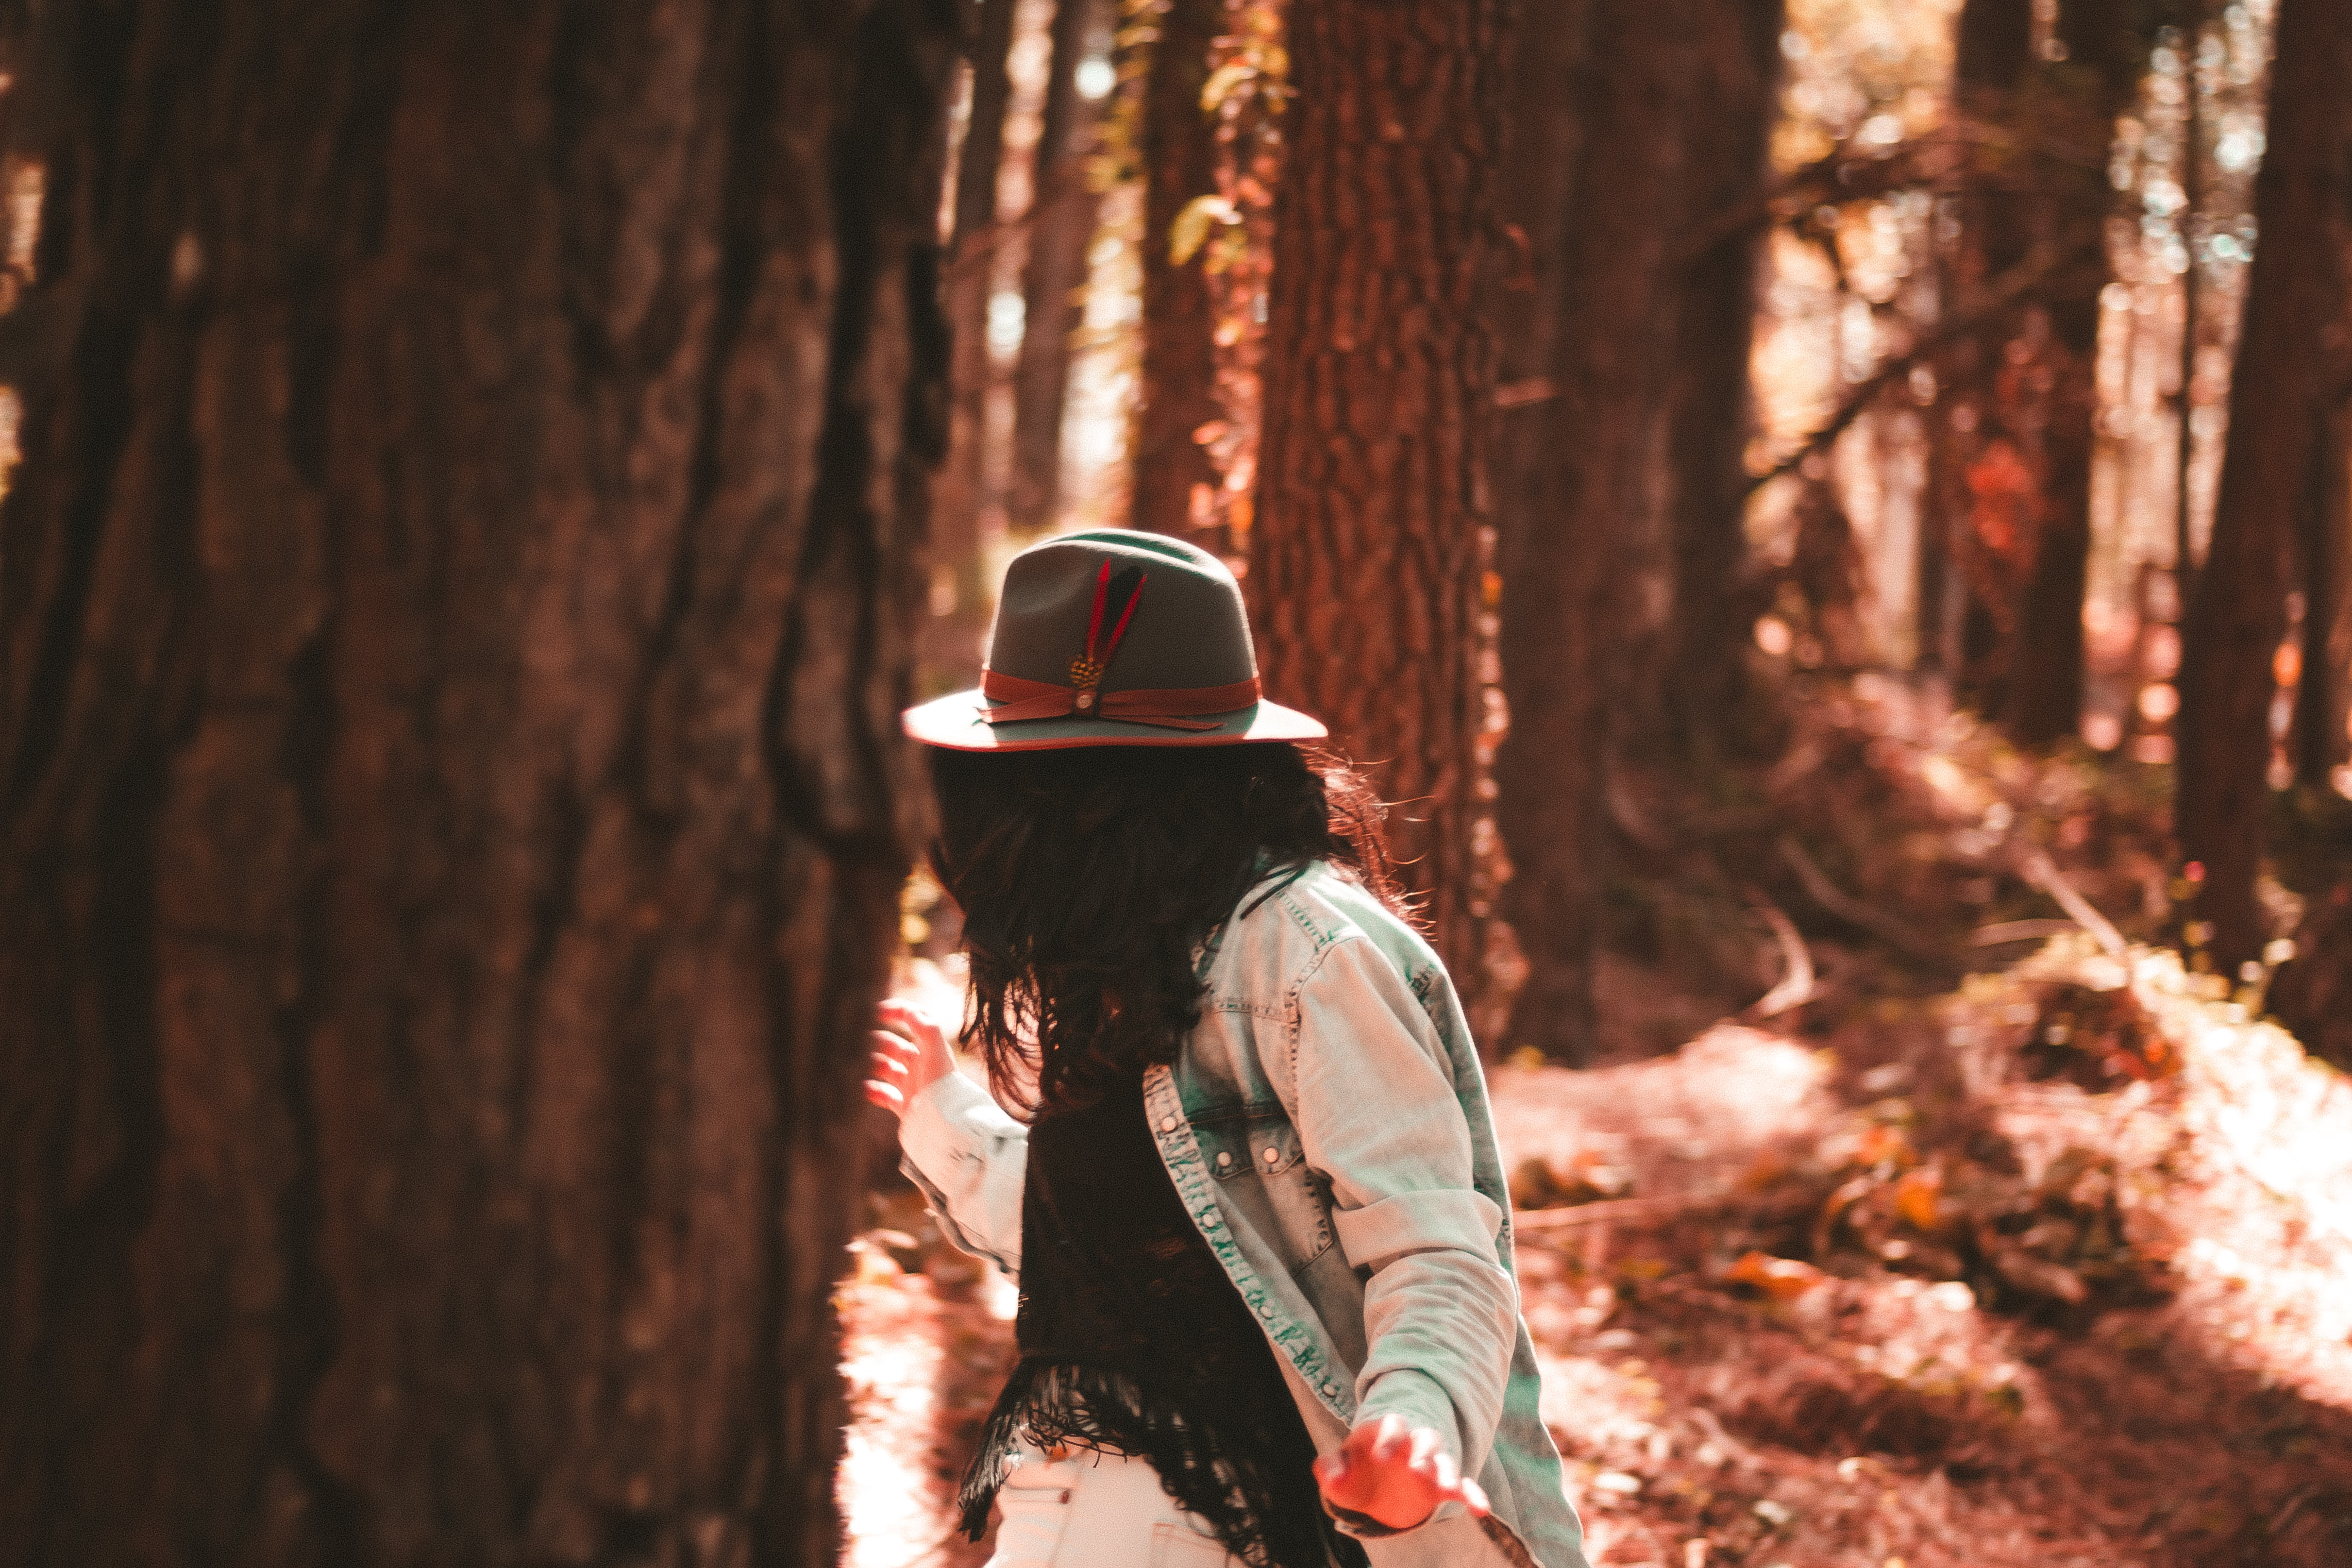 A woman wearing a hat with a feather in it and a denim shirt dancing in the forest